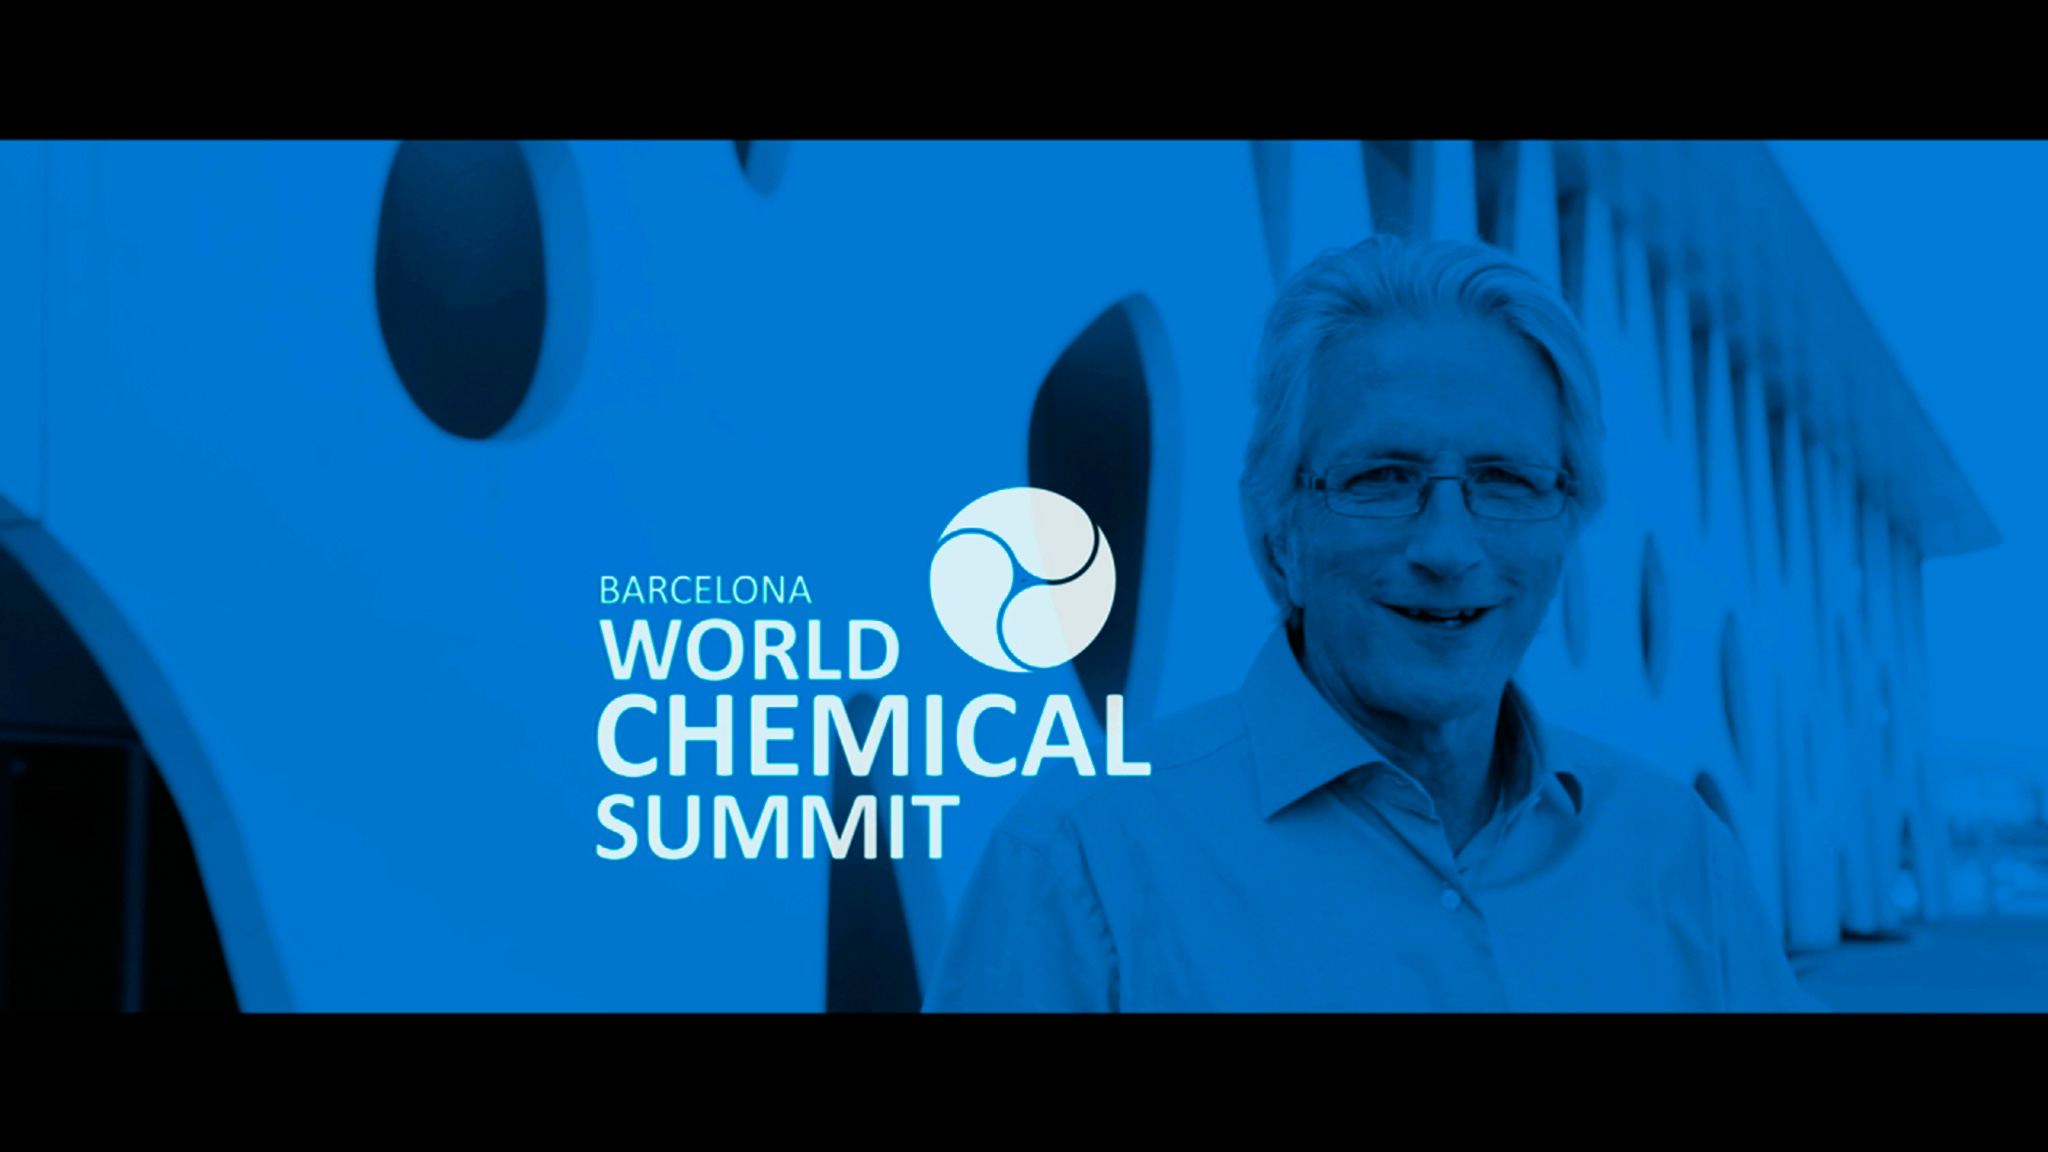 0204-JamesPhillips+34609668669-Presenter-WorldChemicalSummit